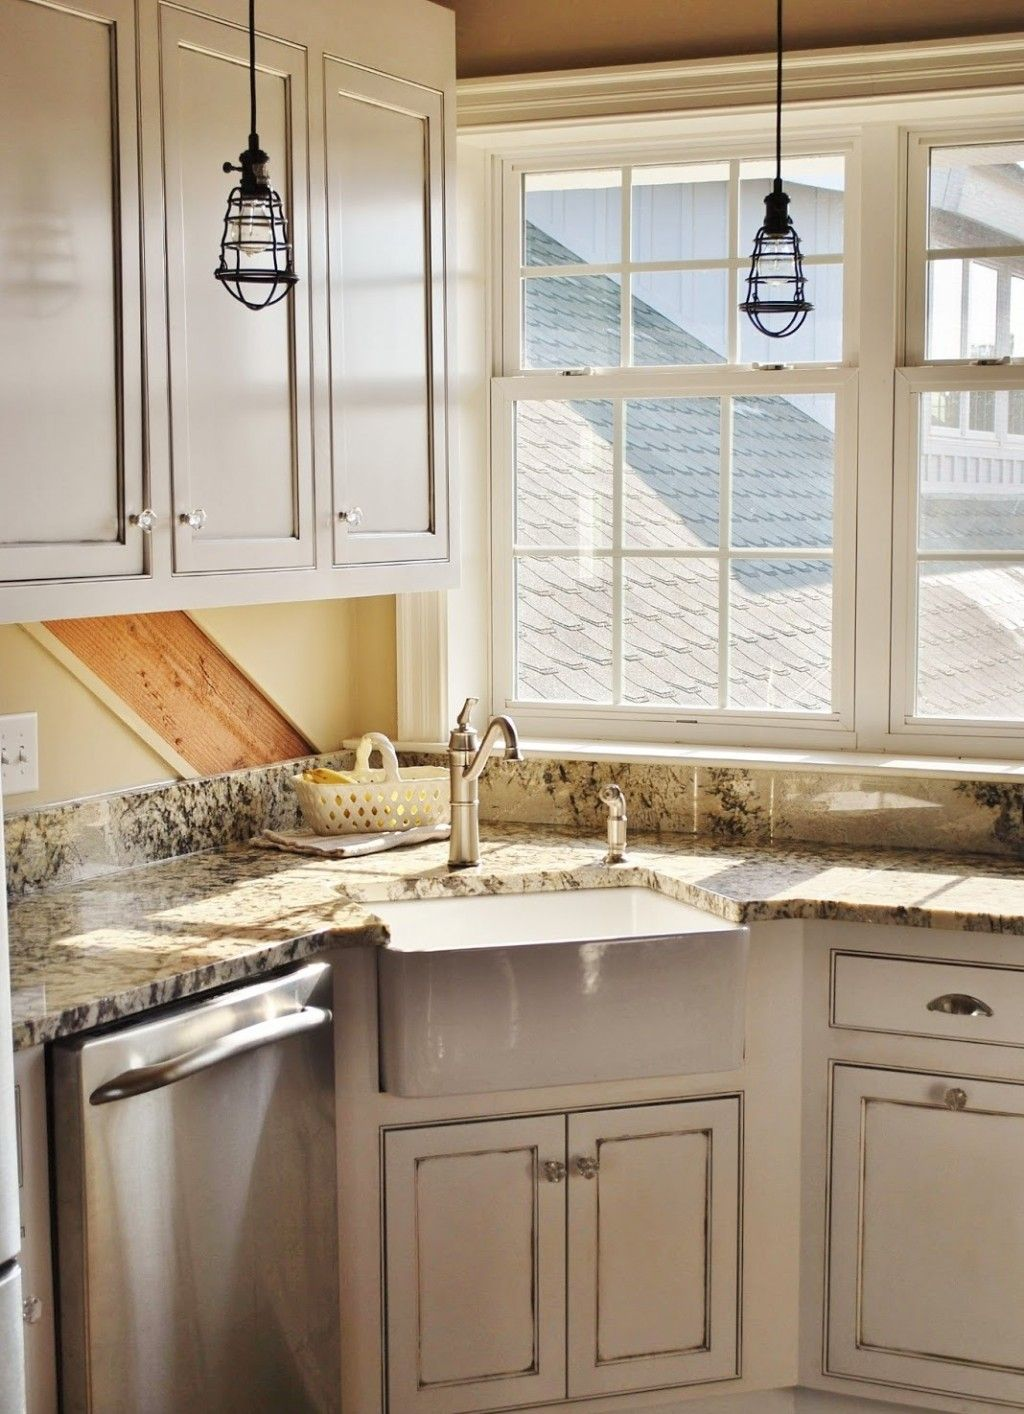 Corner Sinks Kitchen In 2020 Corner Sink Kitchen Farmhouse Sink Kitchen Kitchen Sink Design